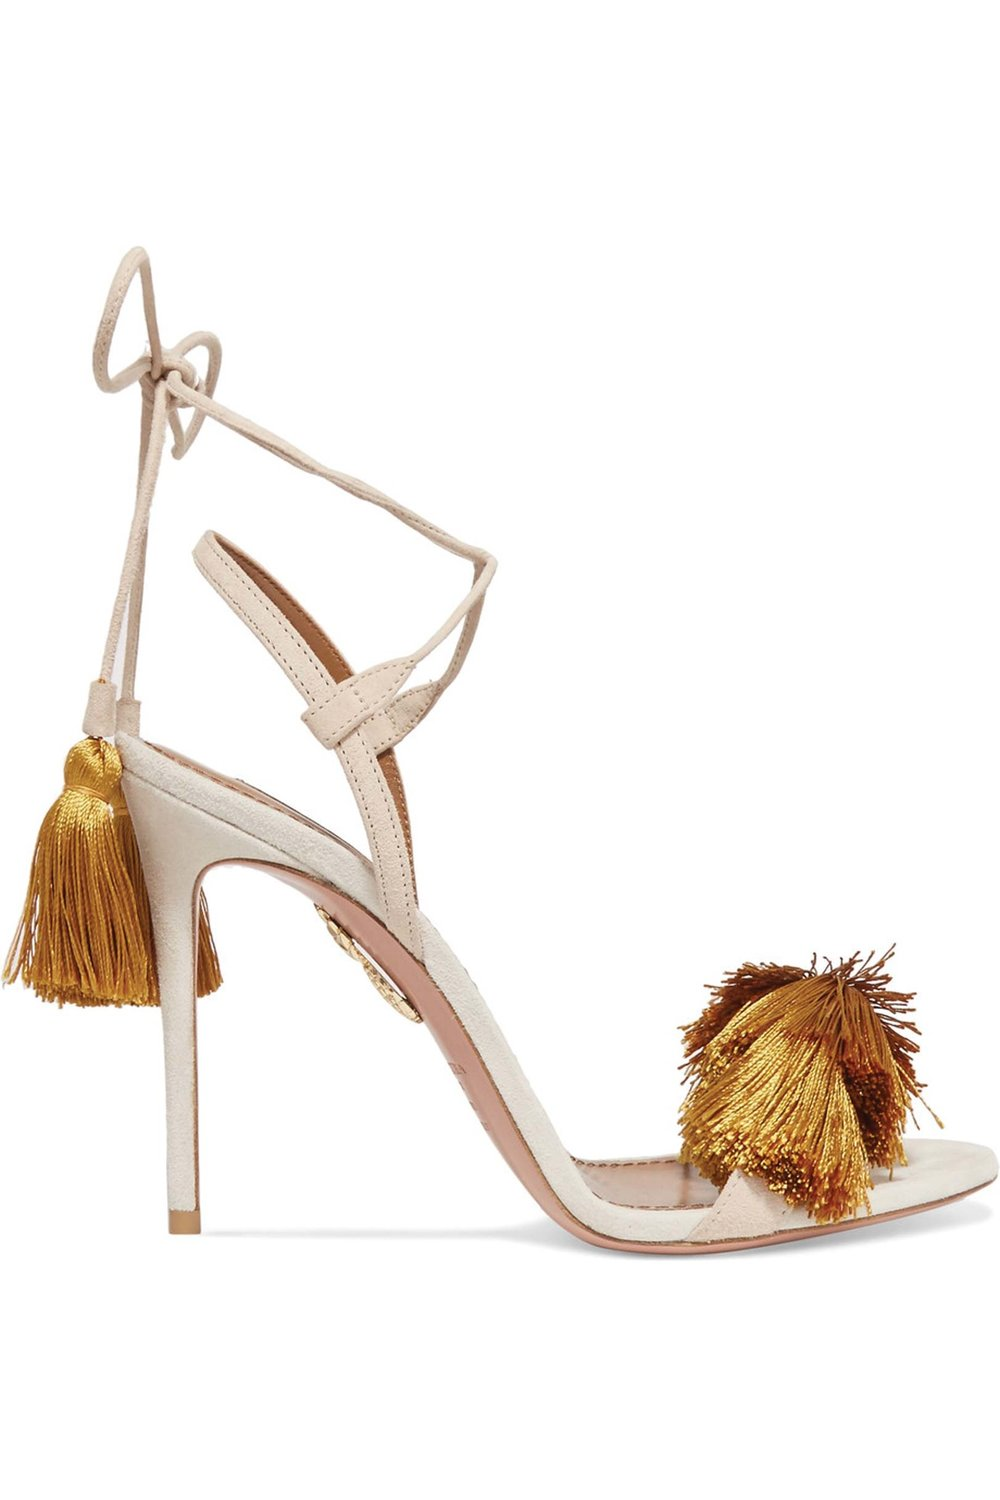 Tasseled Two-Tone Suede Sandals by Aquazzura & Johanna Ortiz US$690